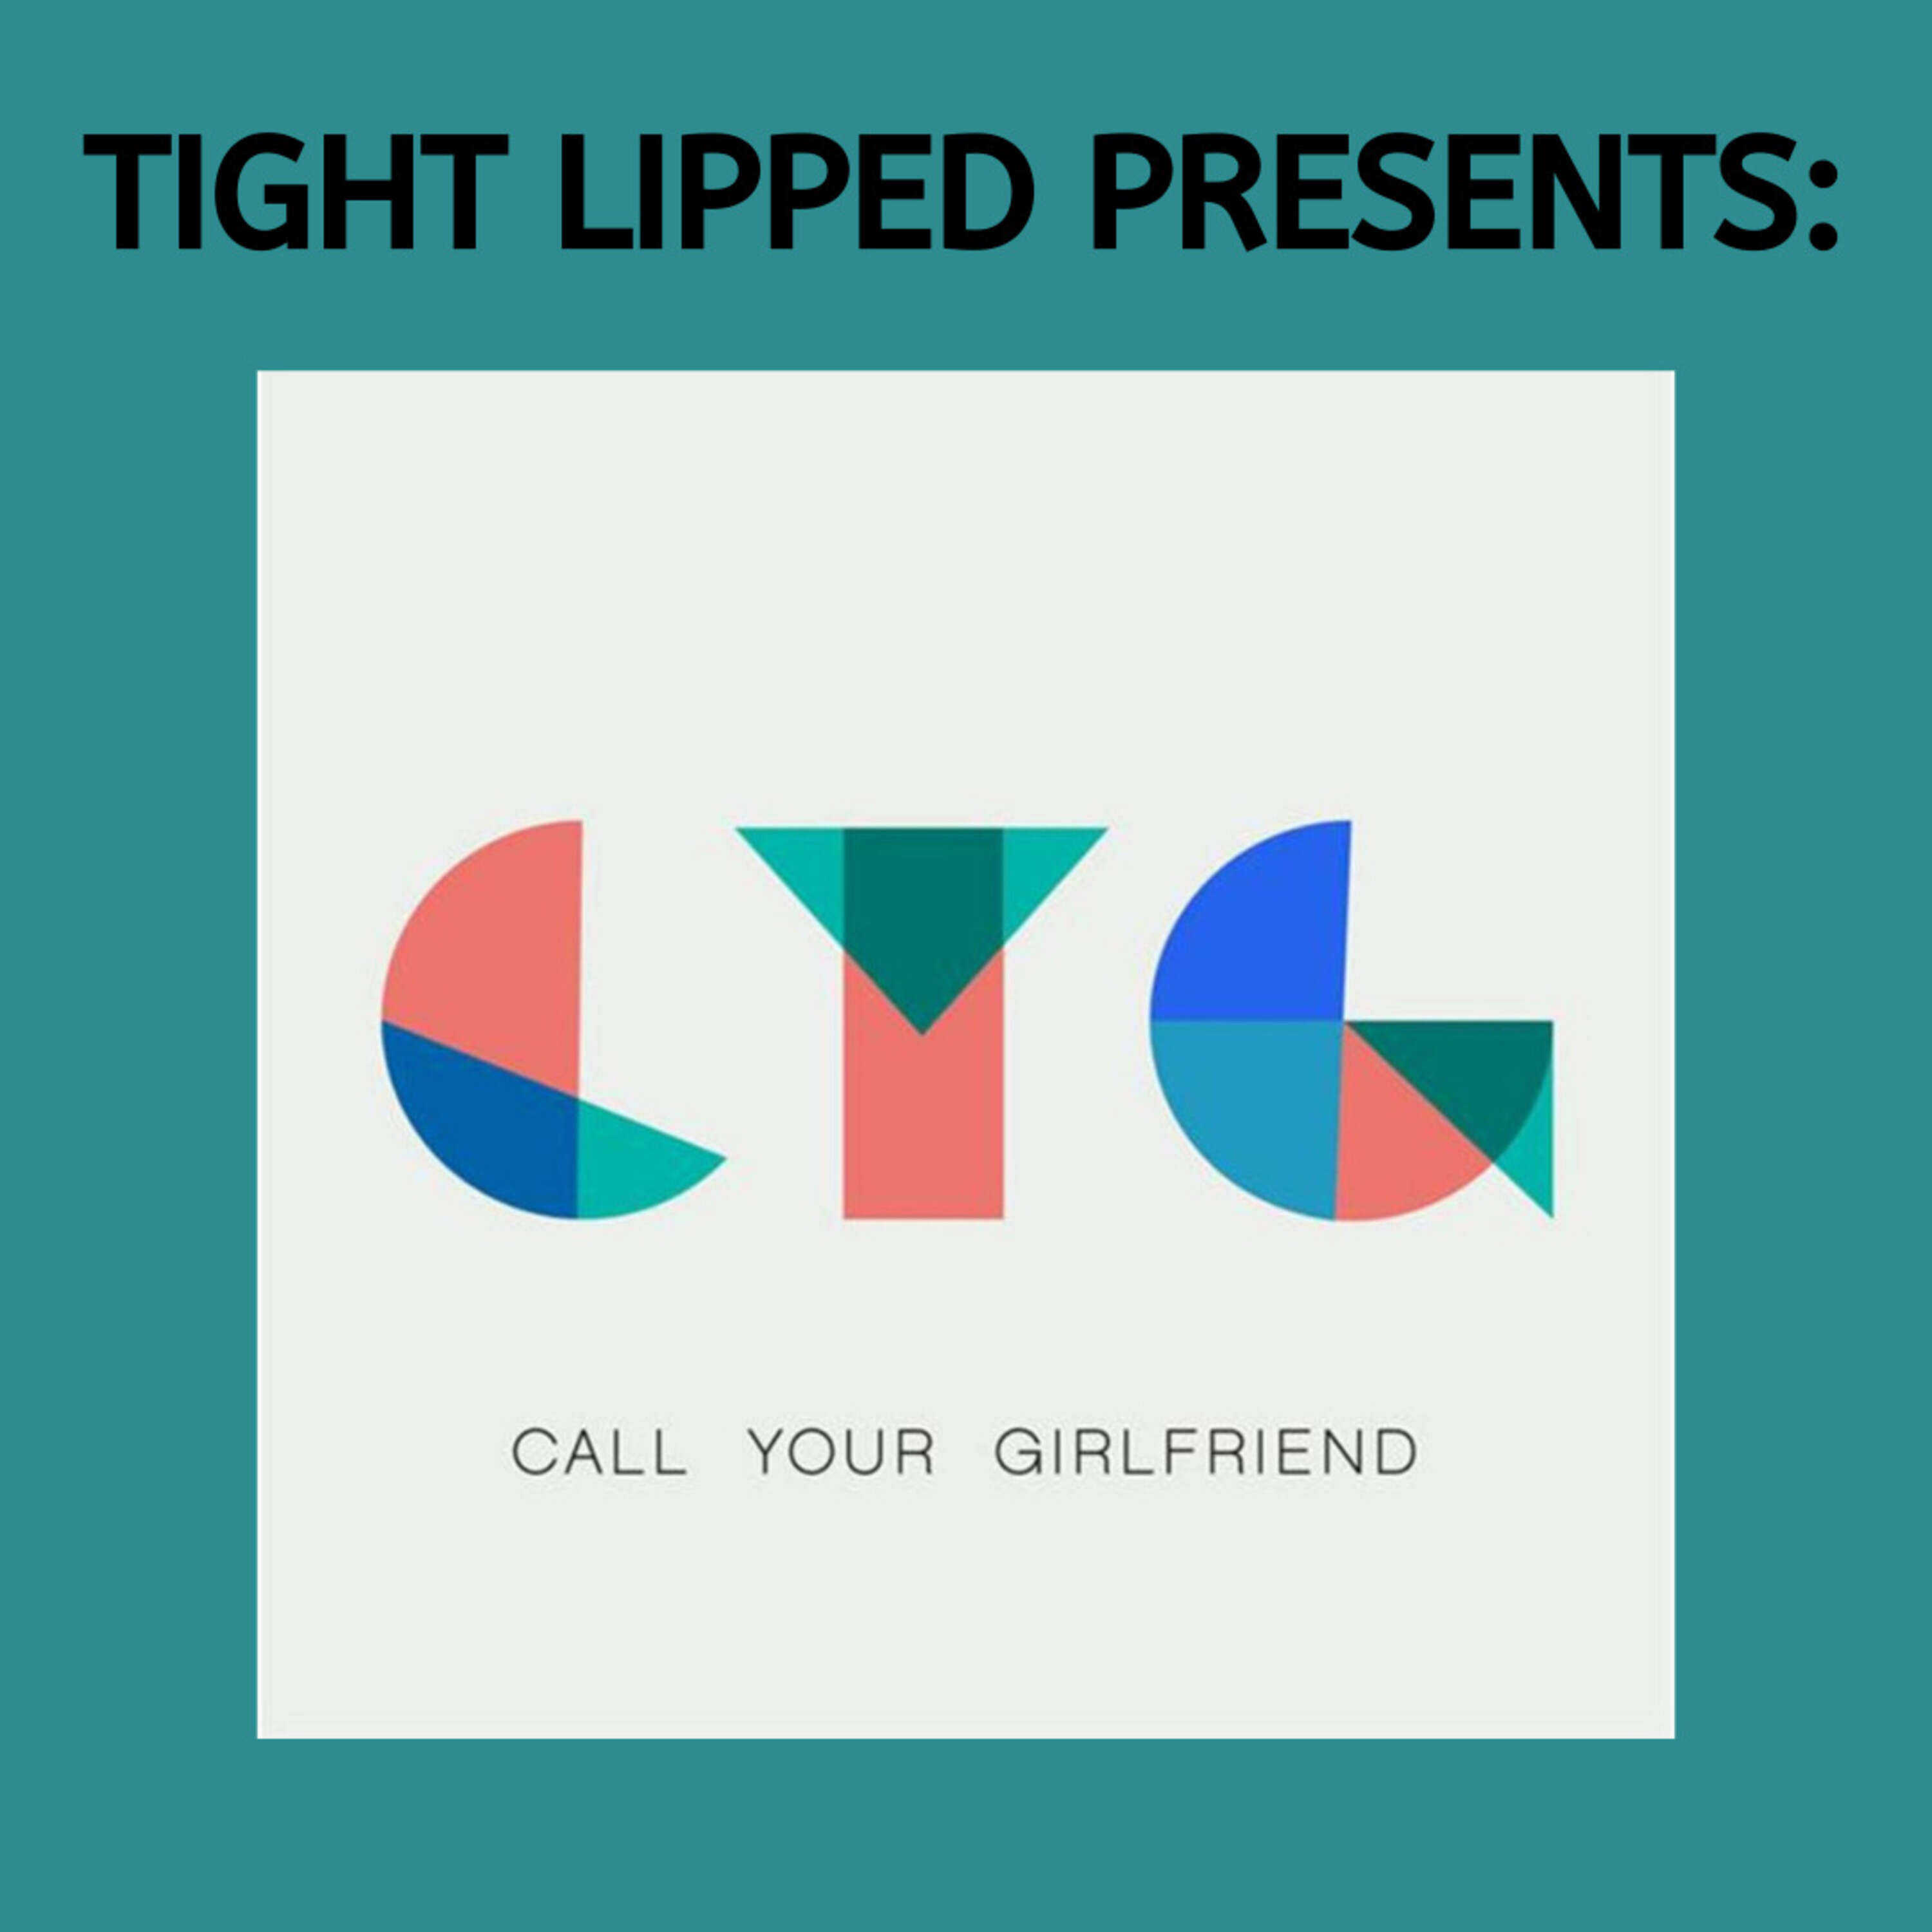 Tight Lipped Presents: Call Your Girlfriend